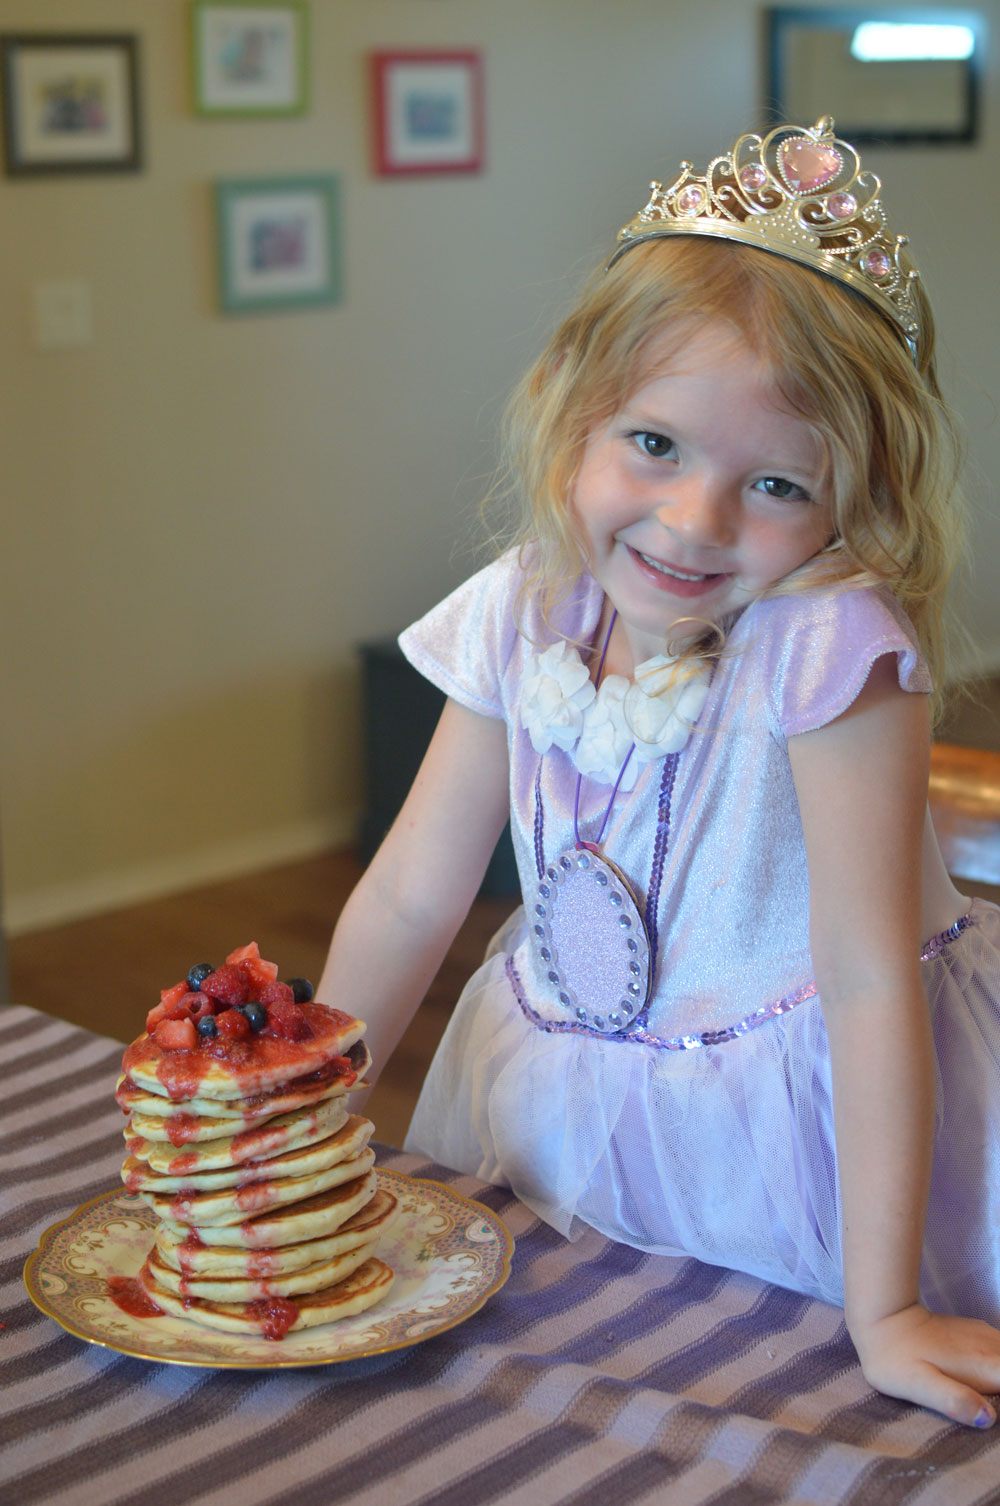 Delicious Sofia the First Goldenberry Pancakes - Mommy Scene